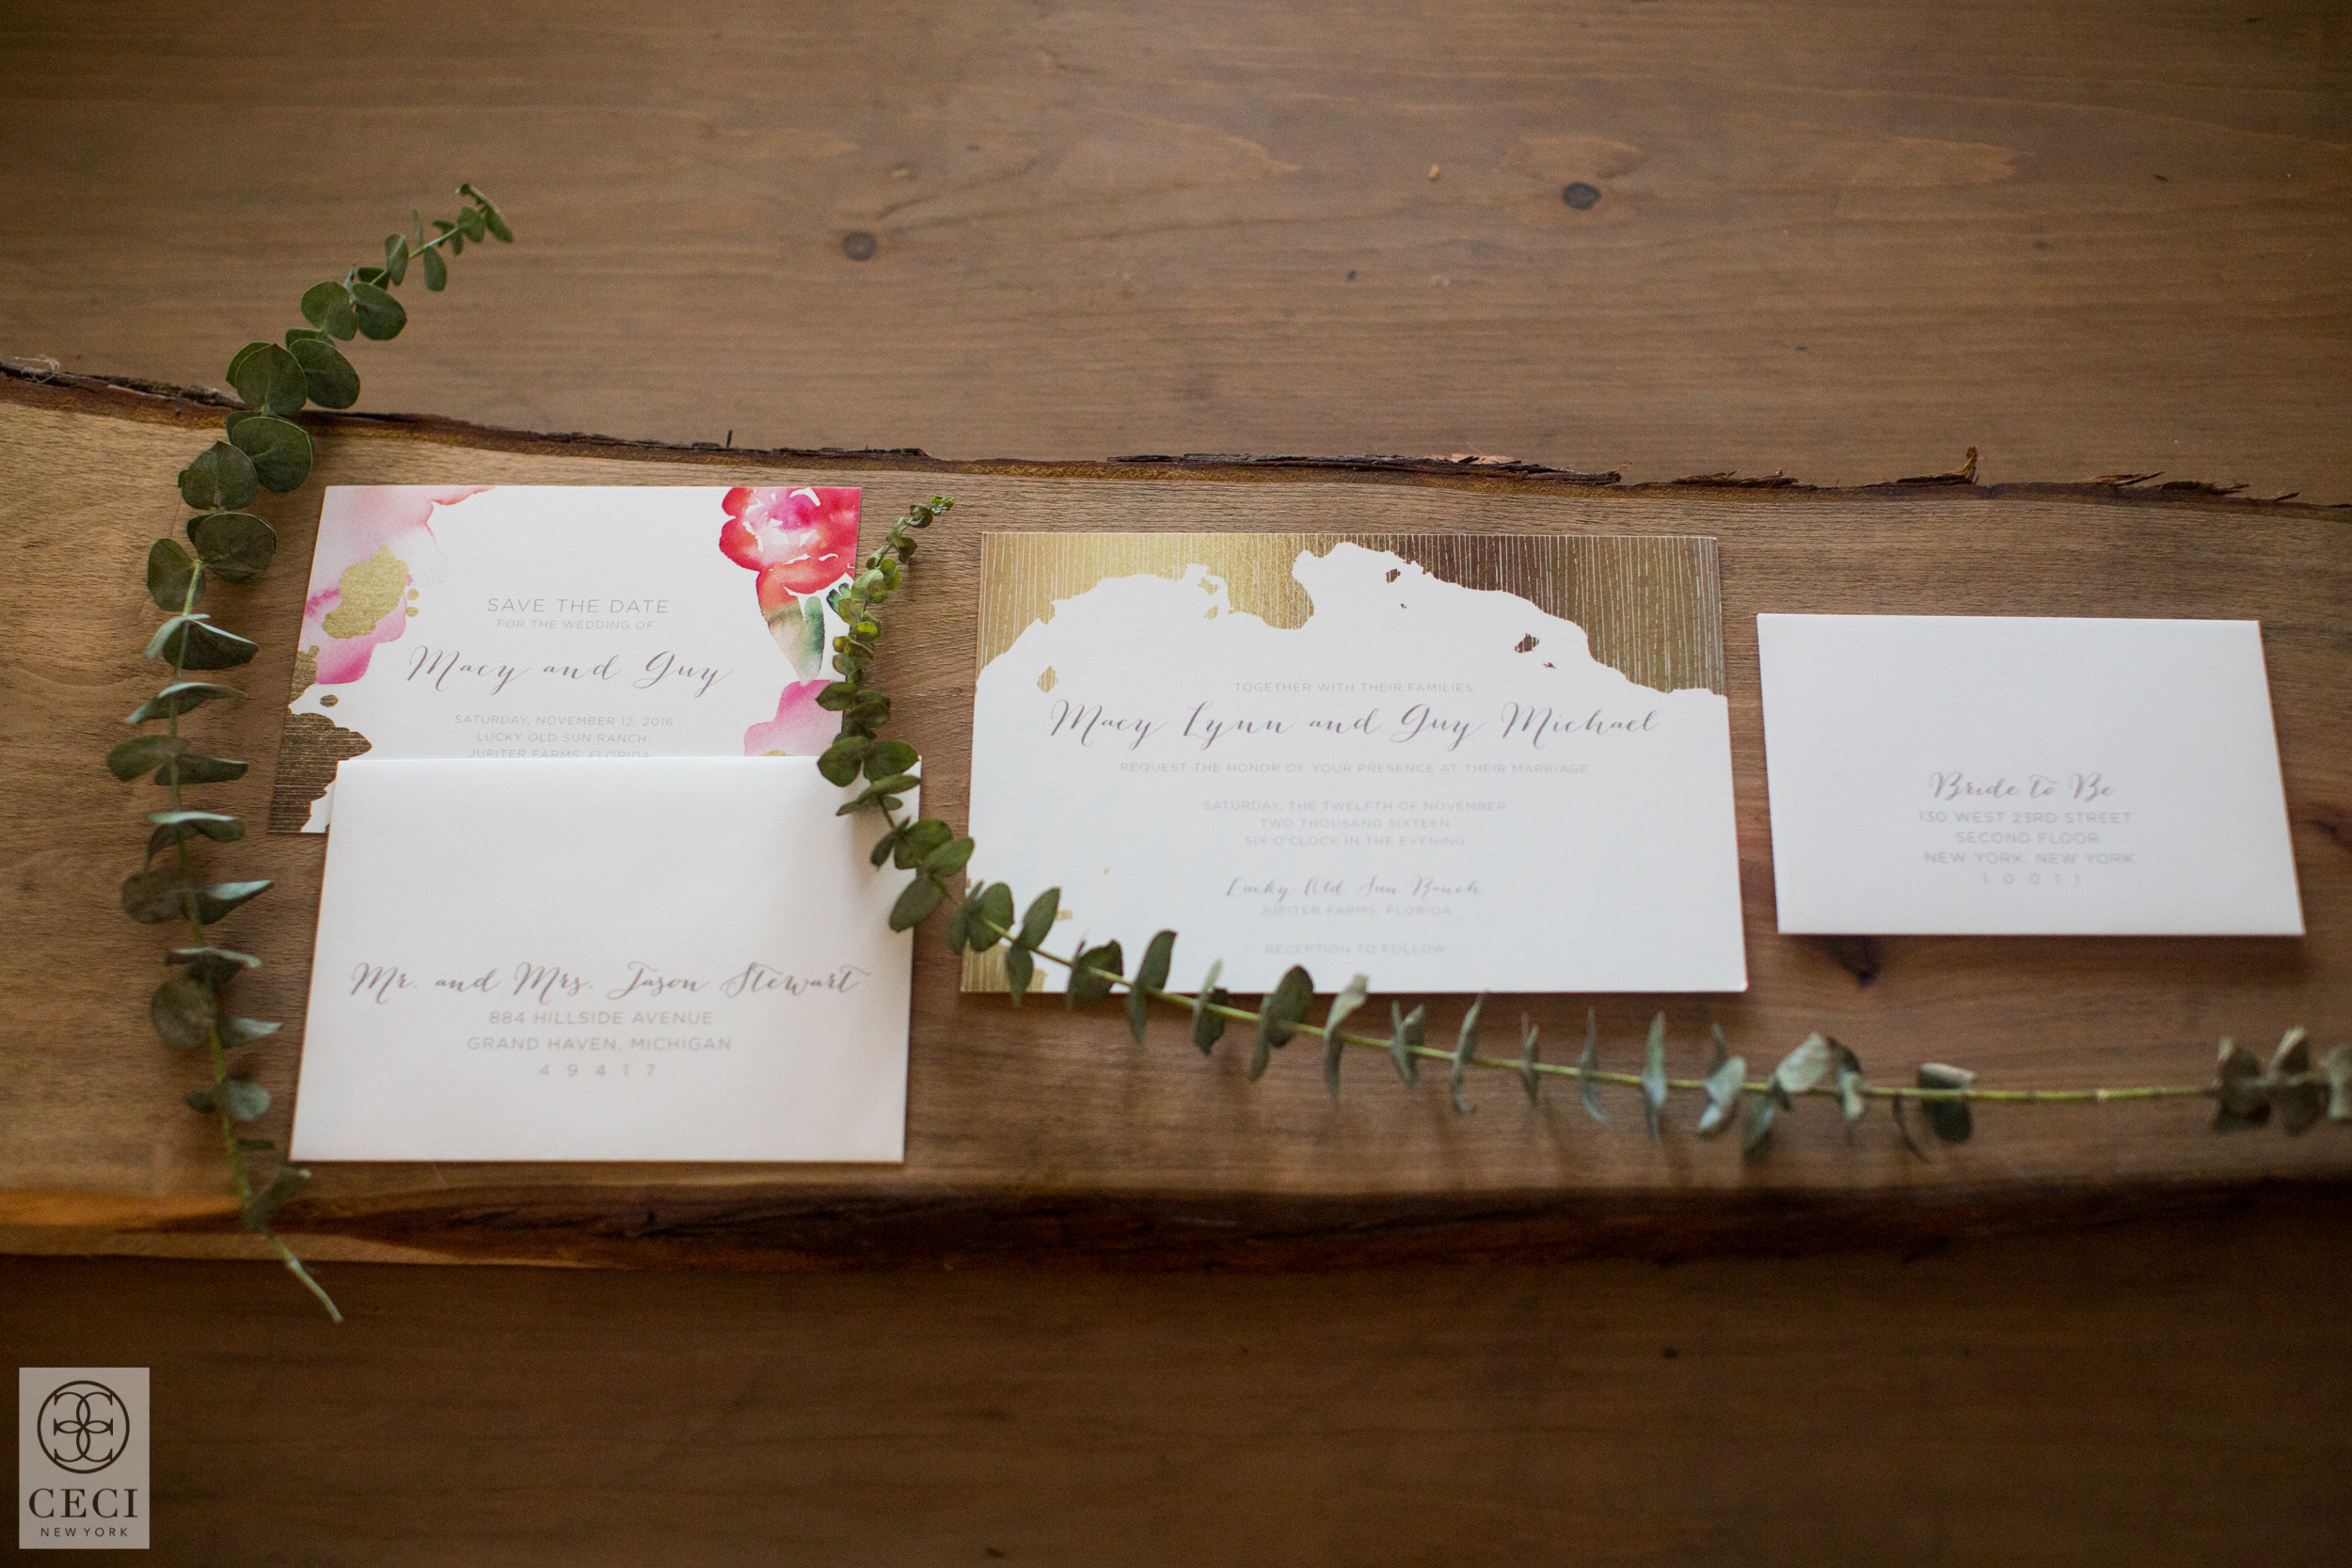 Ceci_New_York_Ceci_Style_Ceci_Johnson_Luxury_Lifestyle_Wedding_Floral_Sara_Kauss_Lucky_Sun_Ranch_Watercolor_Hand_Painted_Inspiration_Design_Custom_Couture_Personalized_Invitations_-9.jpg